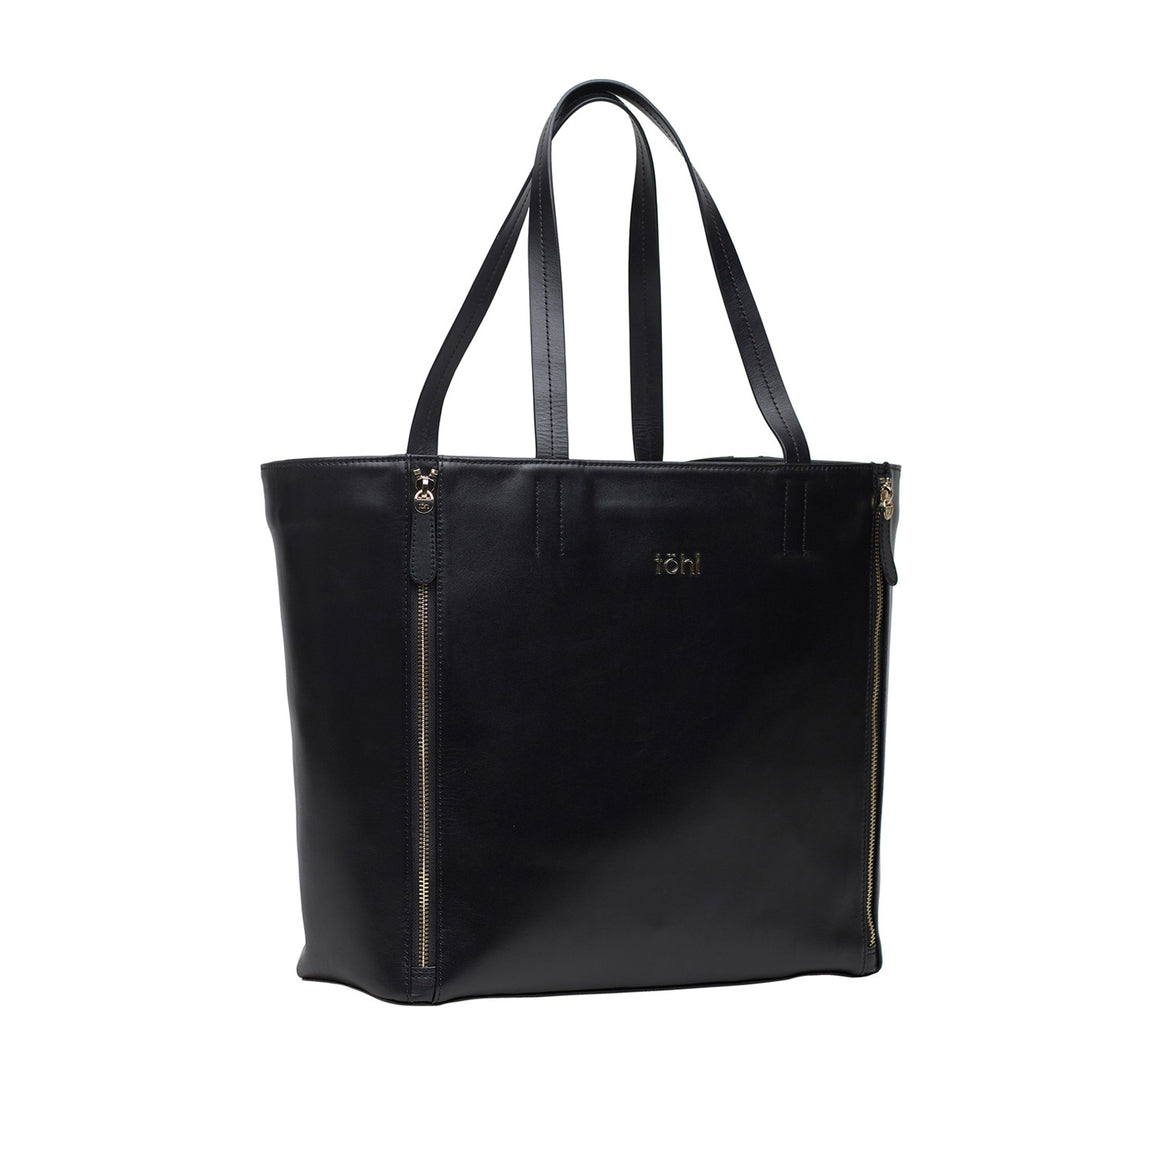 TT 0006 - TOHL RIVINGTON WOMEN'S TOTE BAG - CHARCOAL BLACK